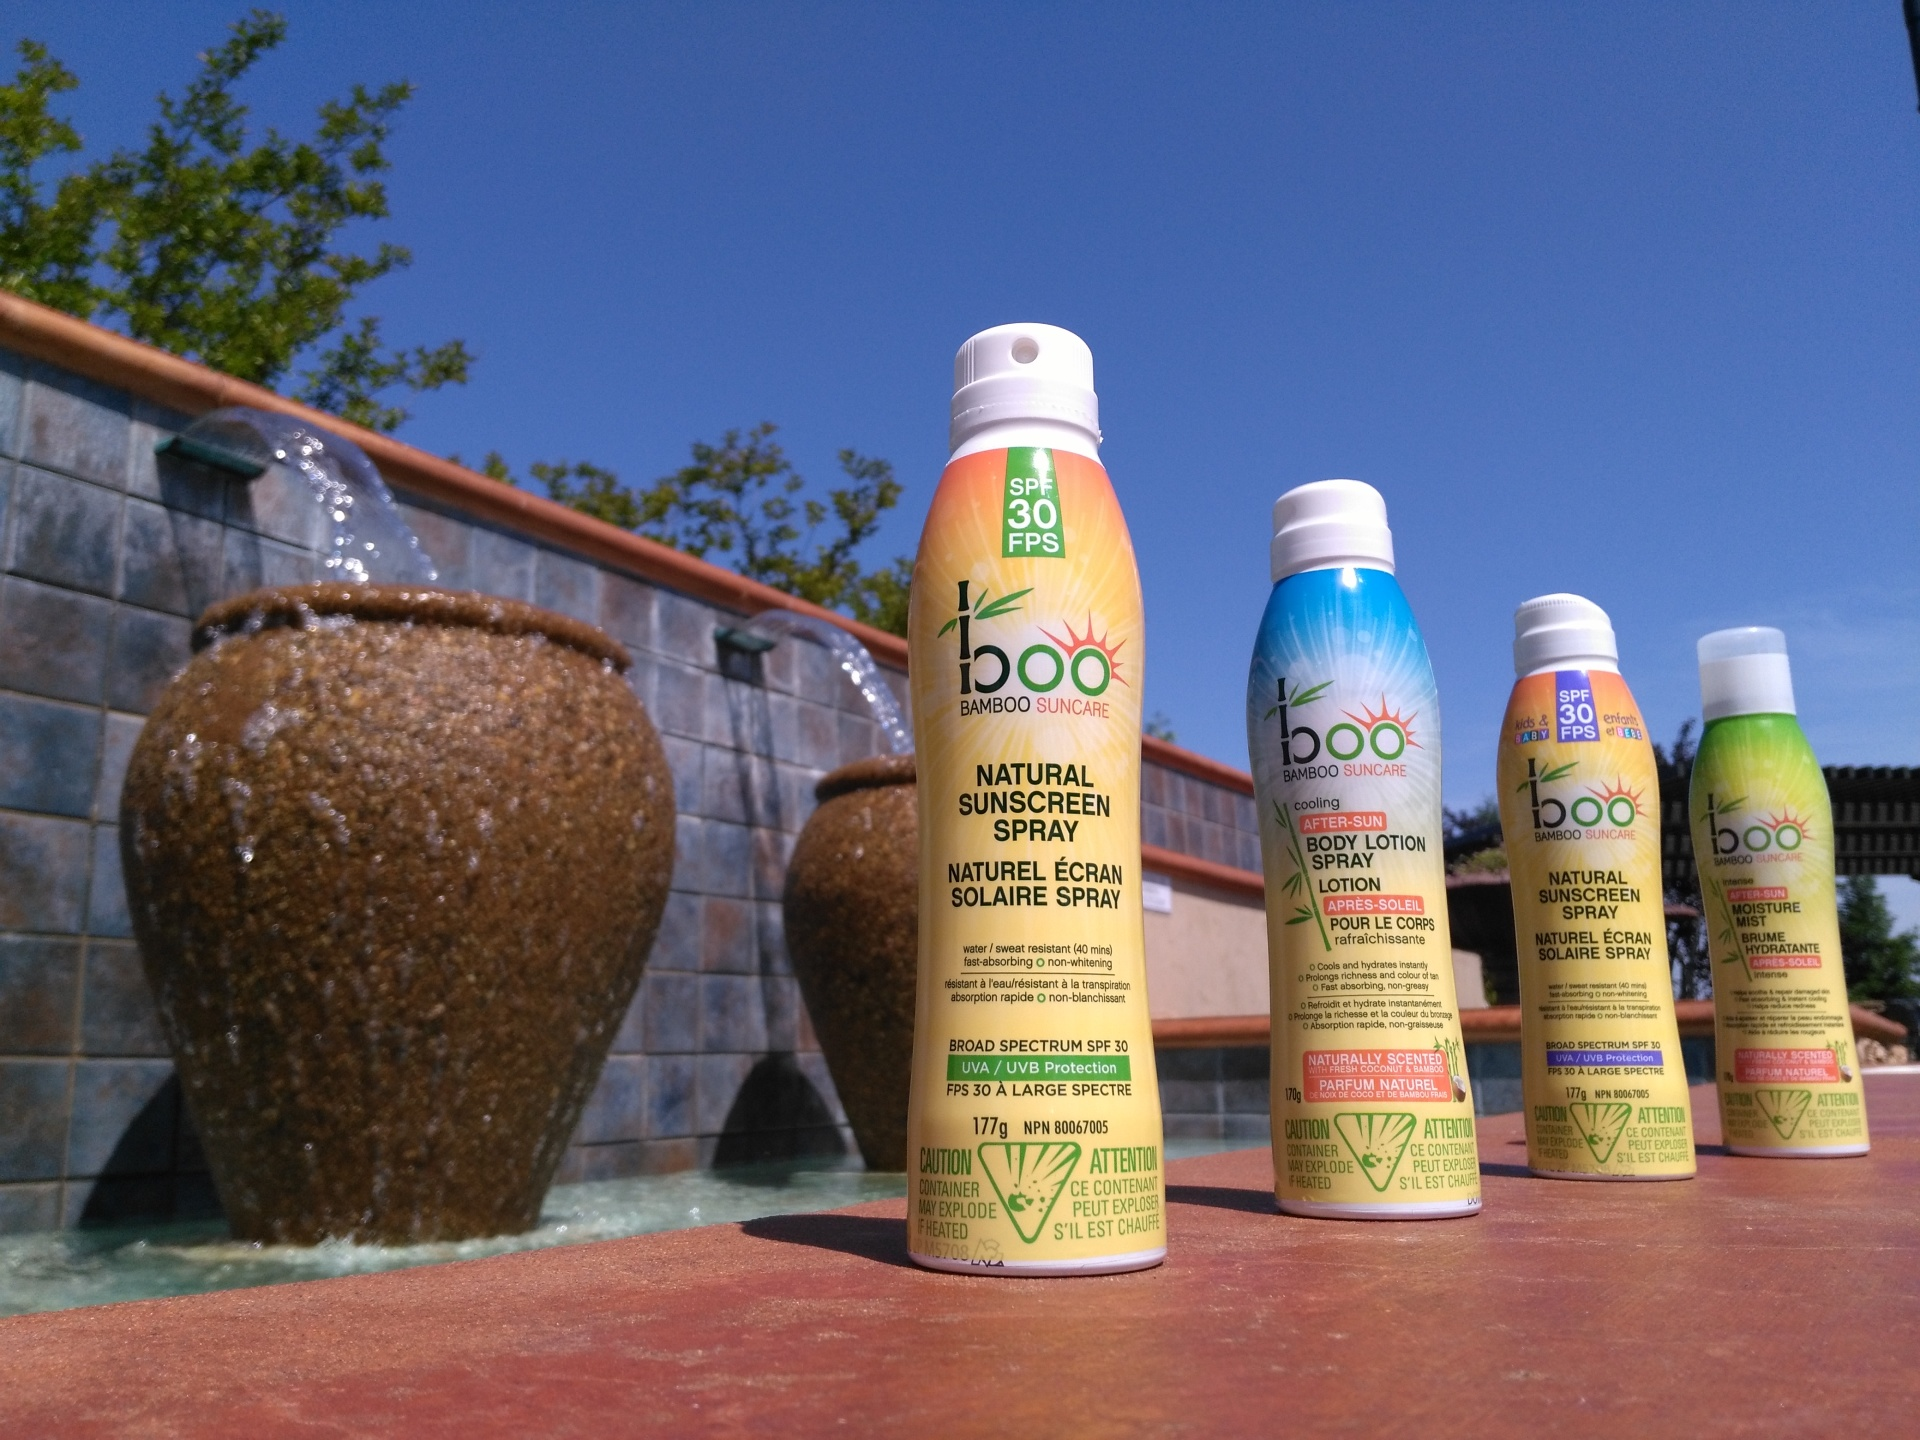 Boo Bamboo, an example of gluten free sunscreen I recommend